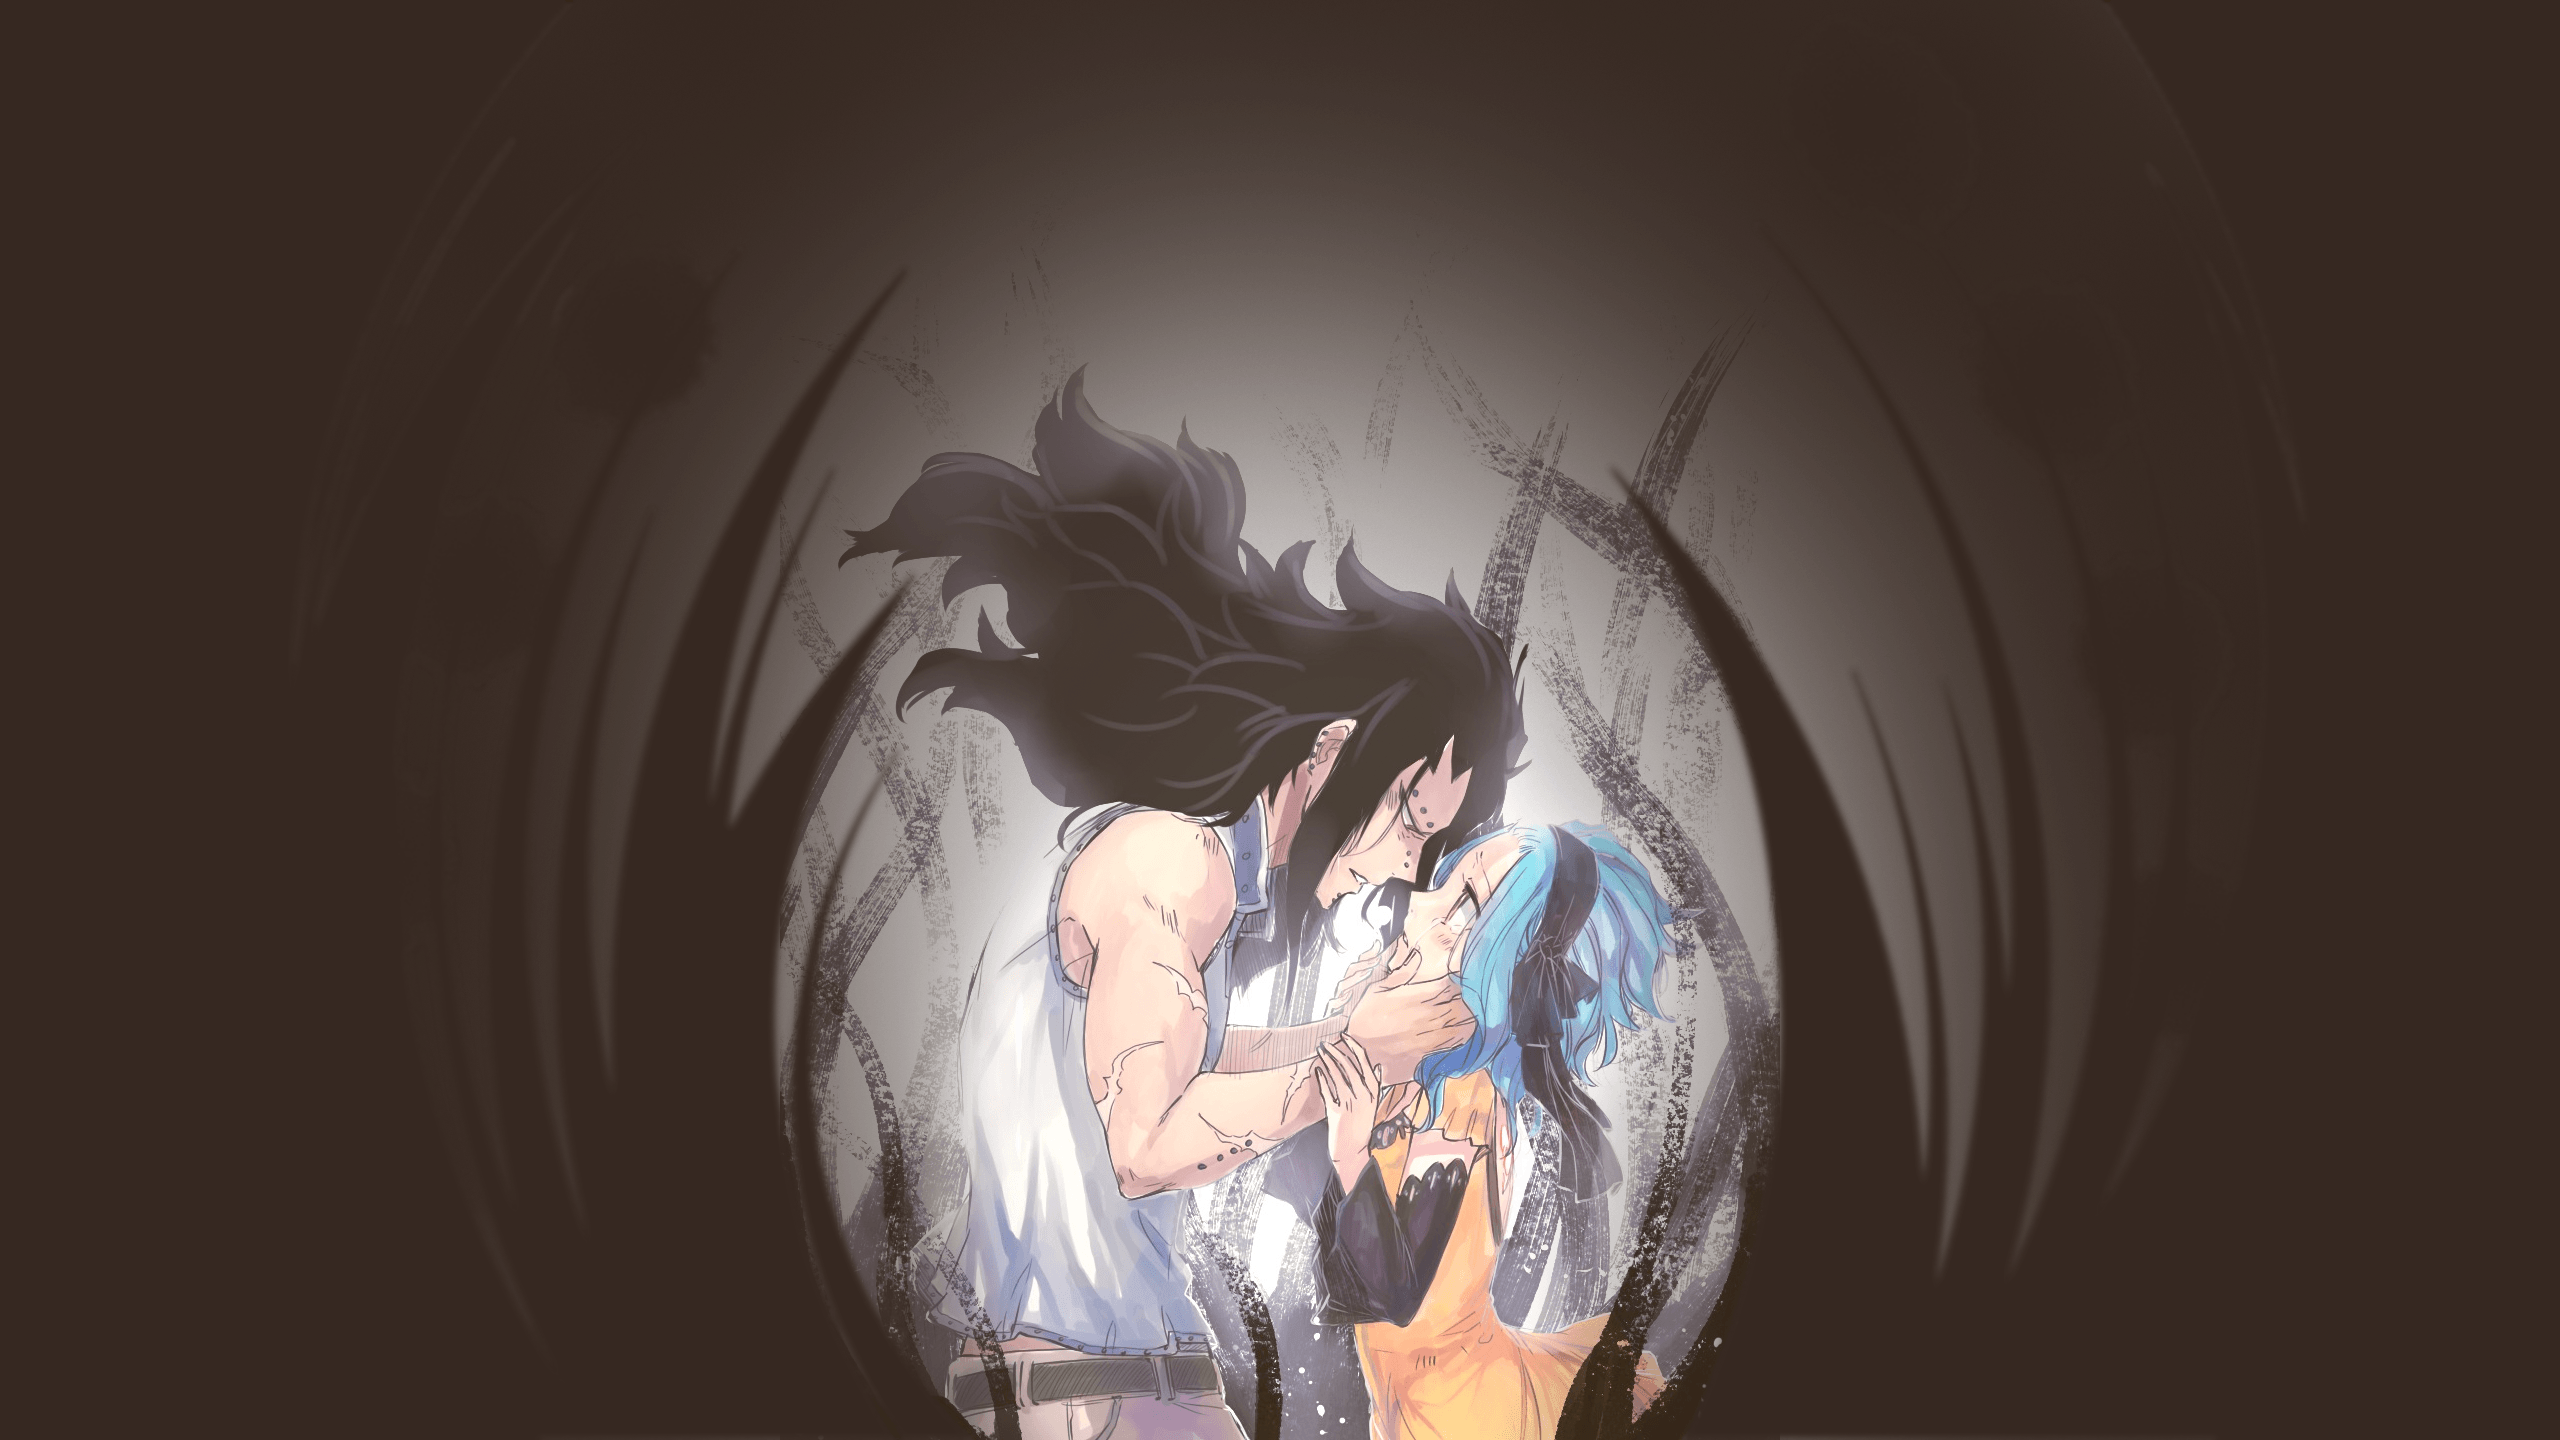 Shadows Wallpaper, by rboz Series: Fairy Tail